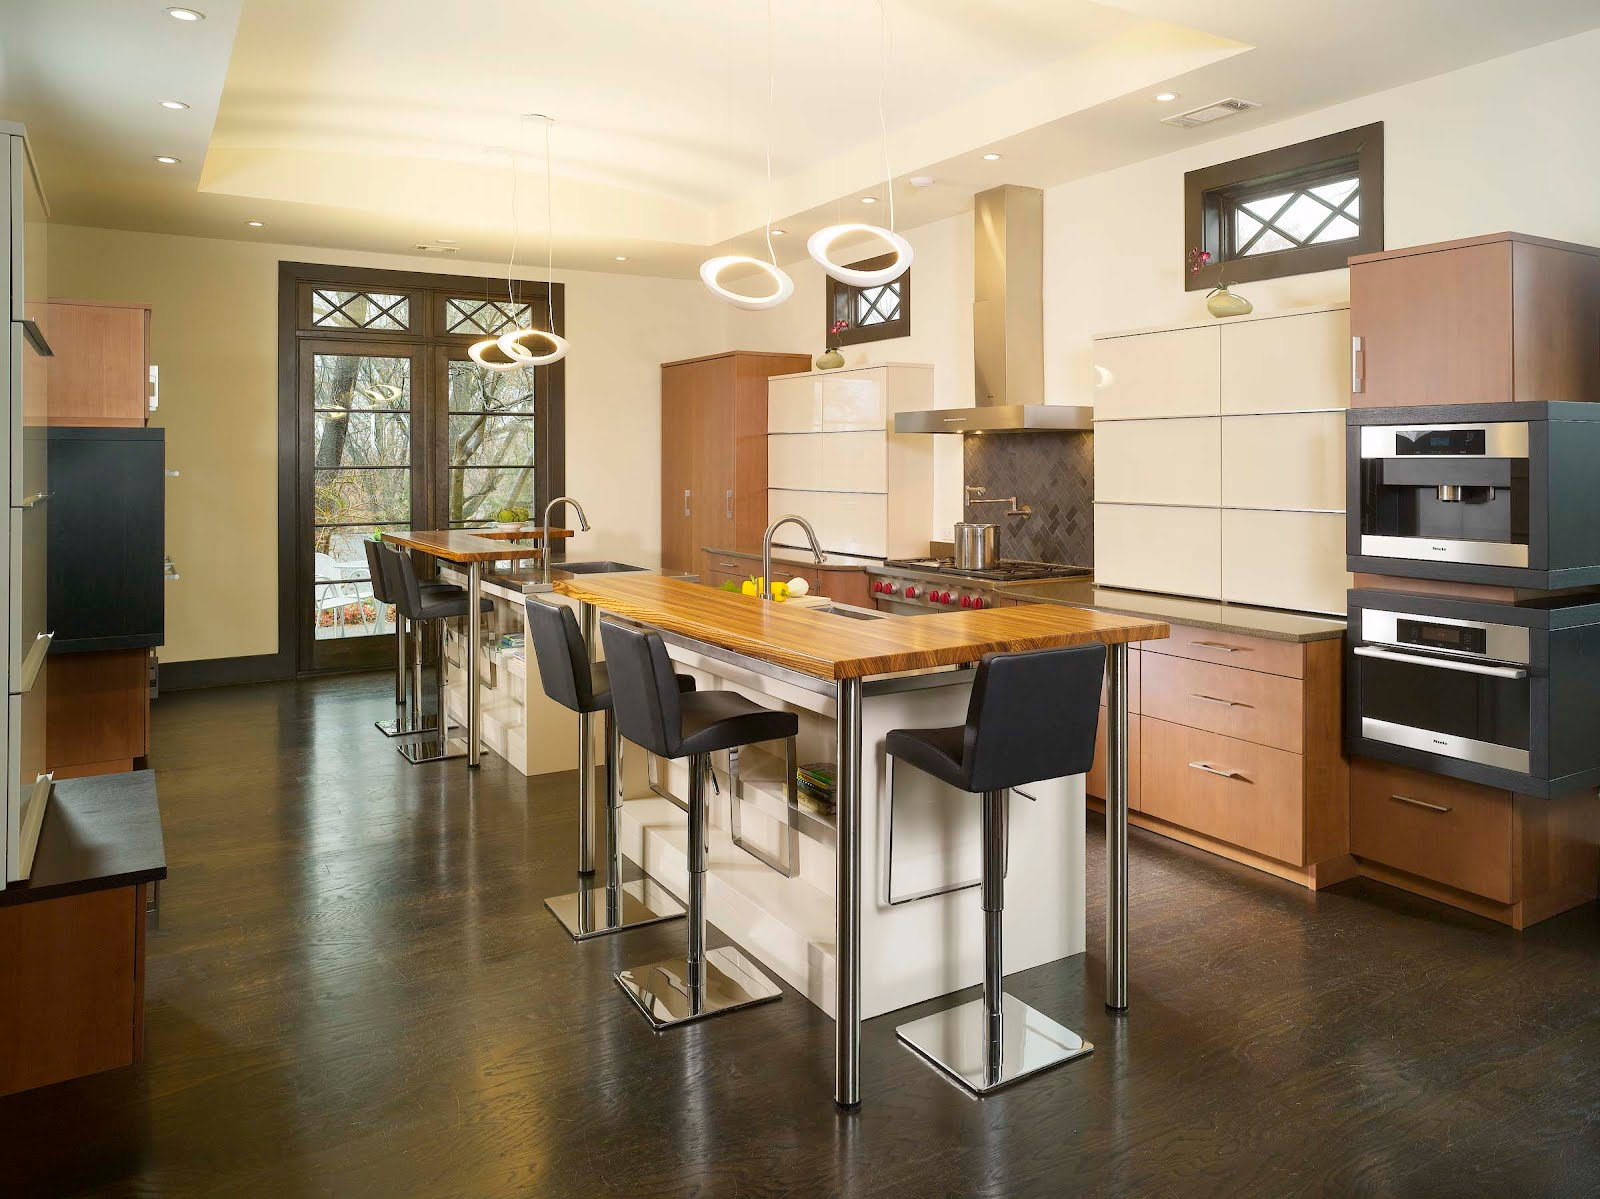 CSI Kitchen & Bath News: Tour of Kitchens